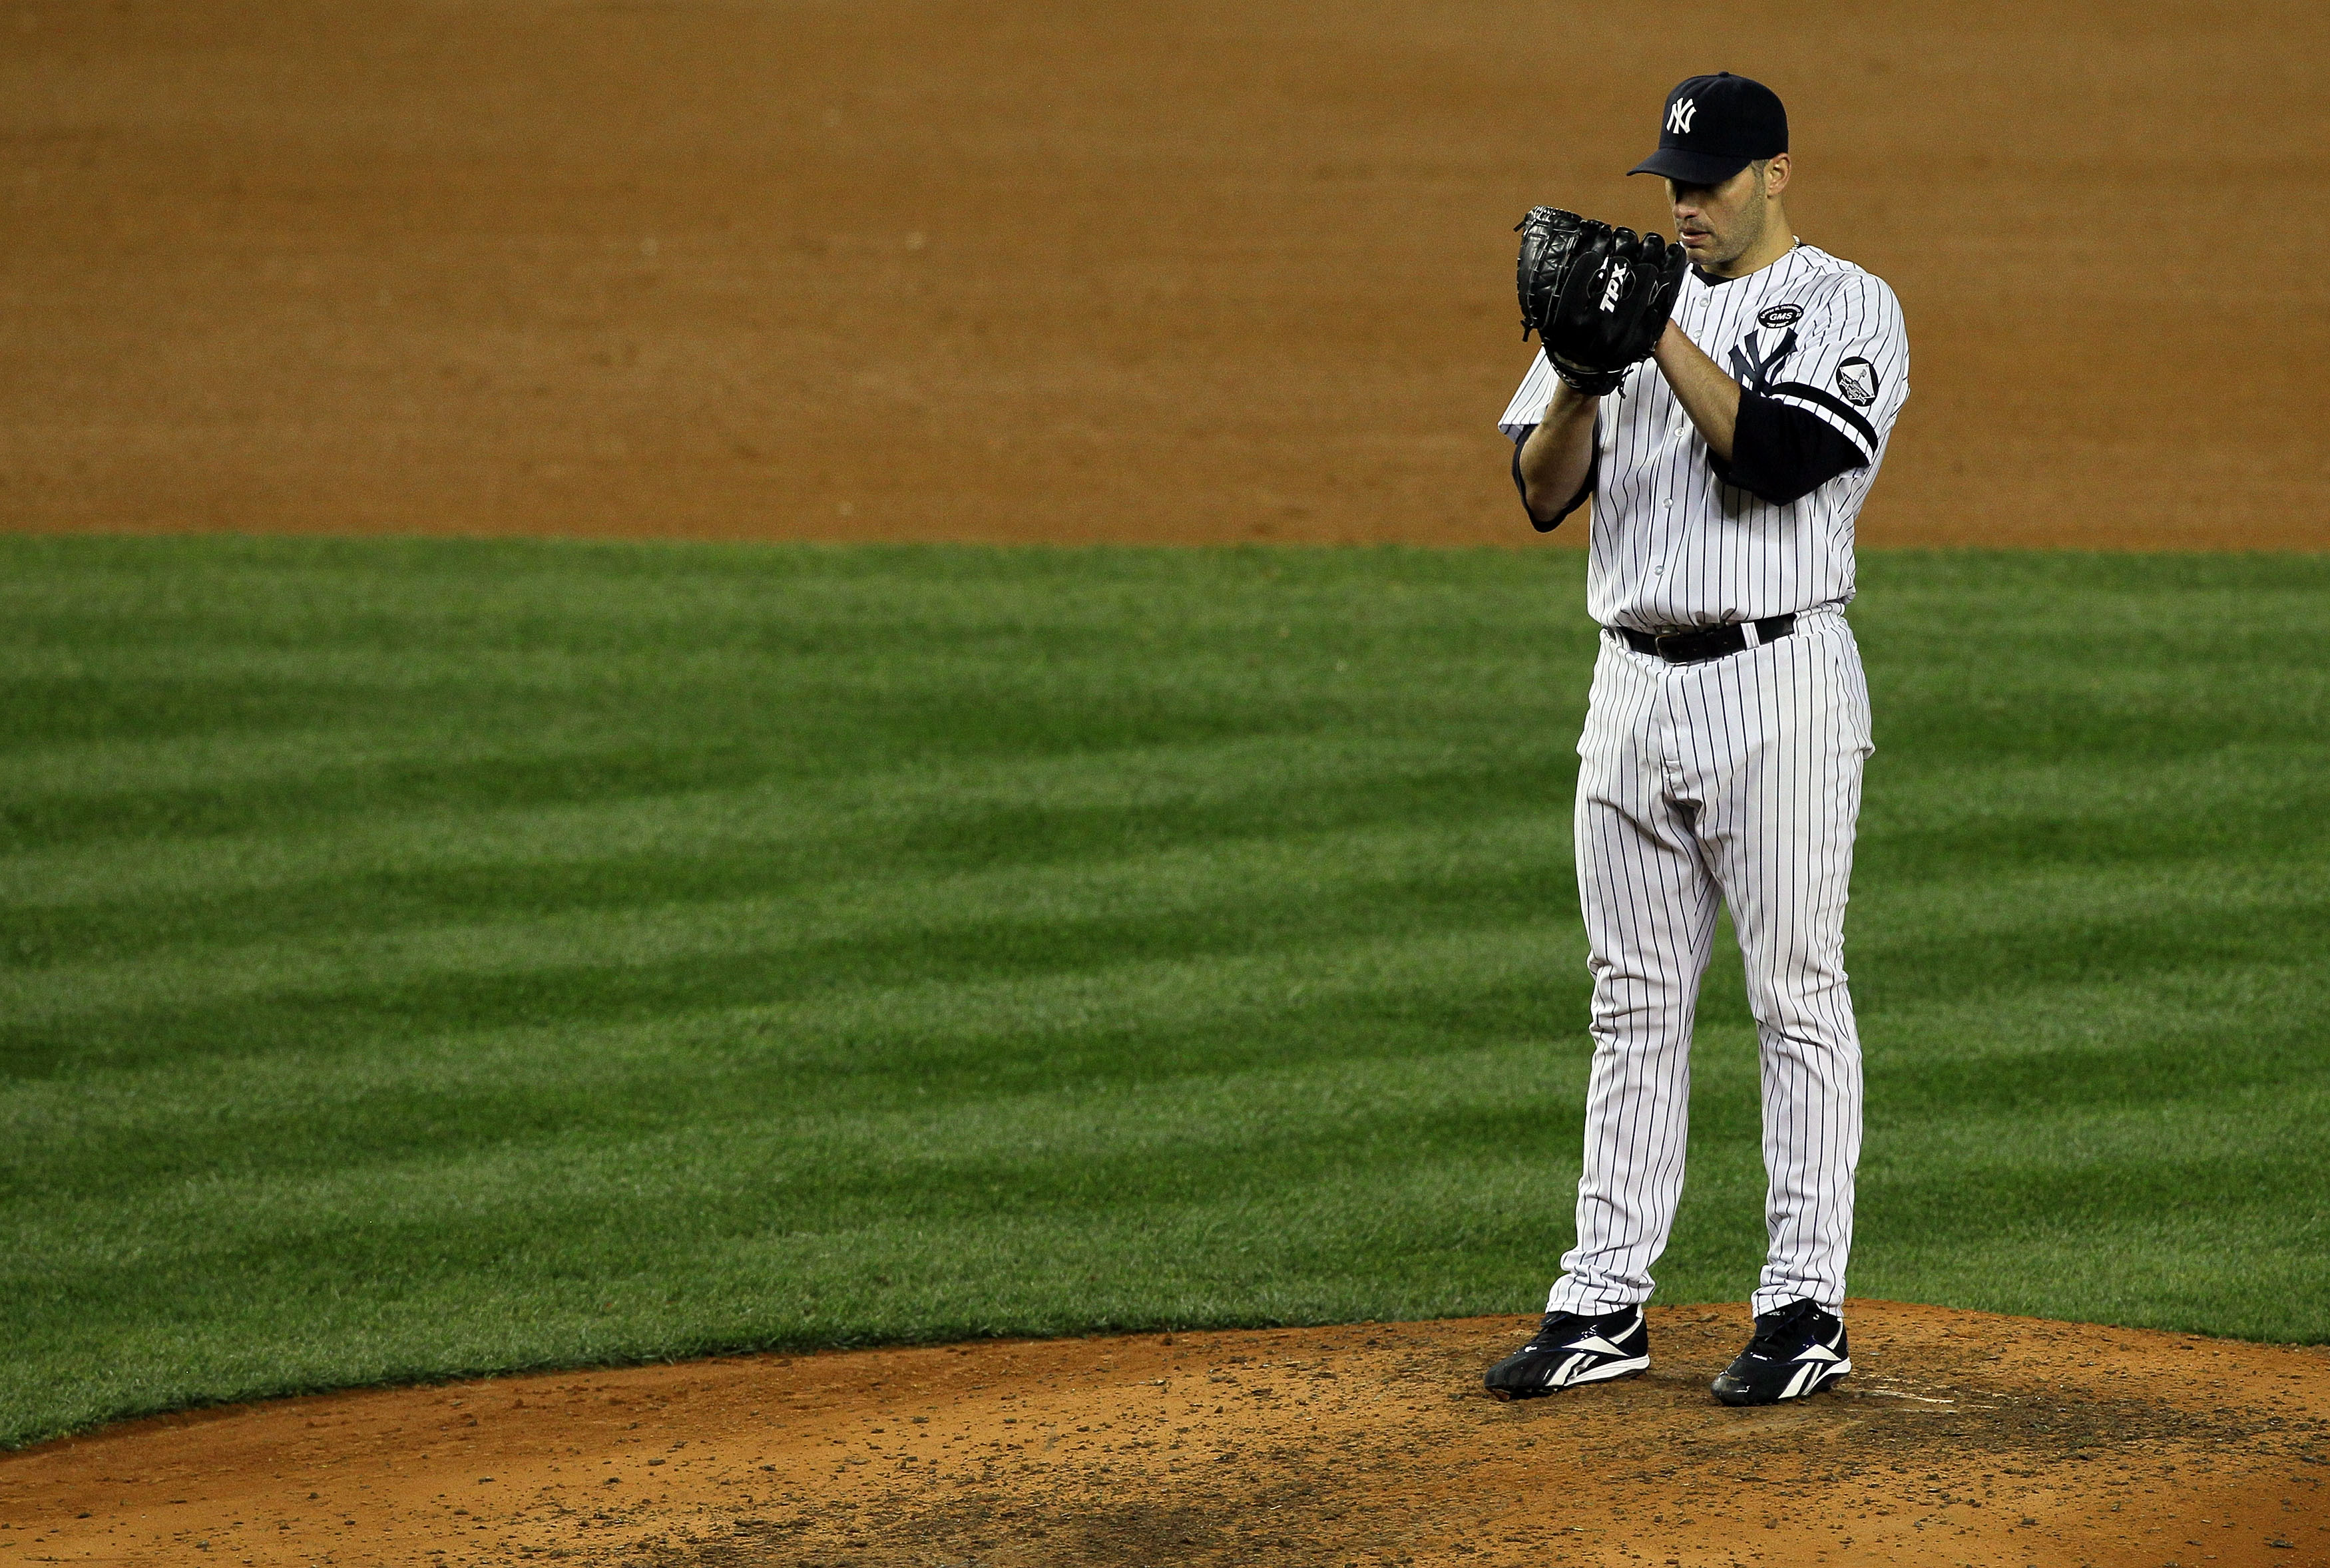 NEW YORK - OCTOBER 18:  Starting pitcher Andy Pettitte #46 of the New York Yankees gets set to throw a pitch against the Texas Rangers in Game Three of the ALCS during the 2010 MLB Playoffs at Yankee Stadium on October 18, 2010 in New York, New York.  (Ph